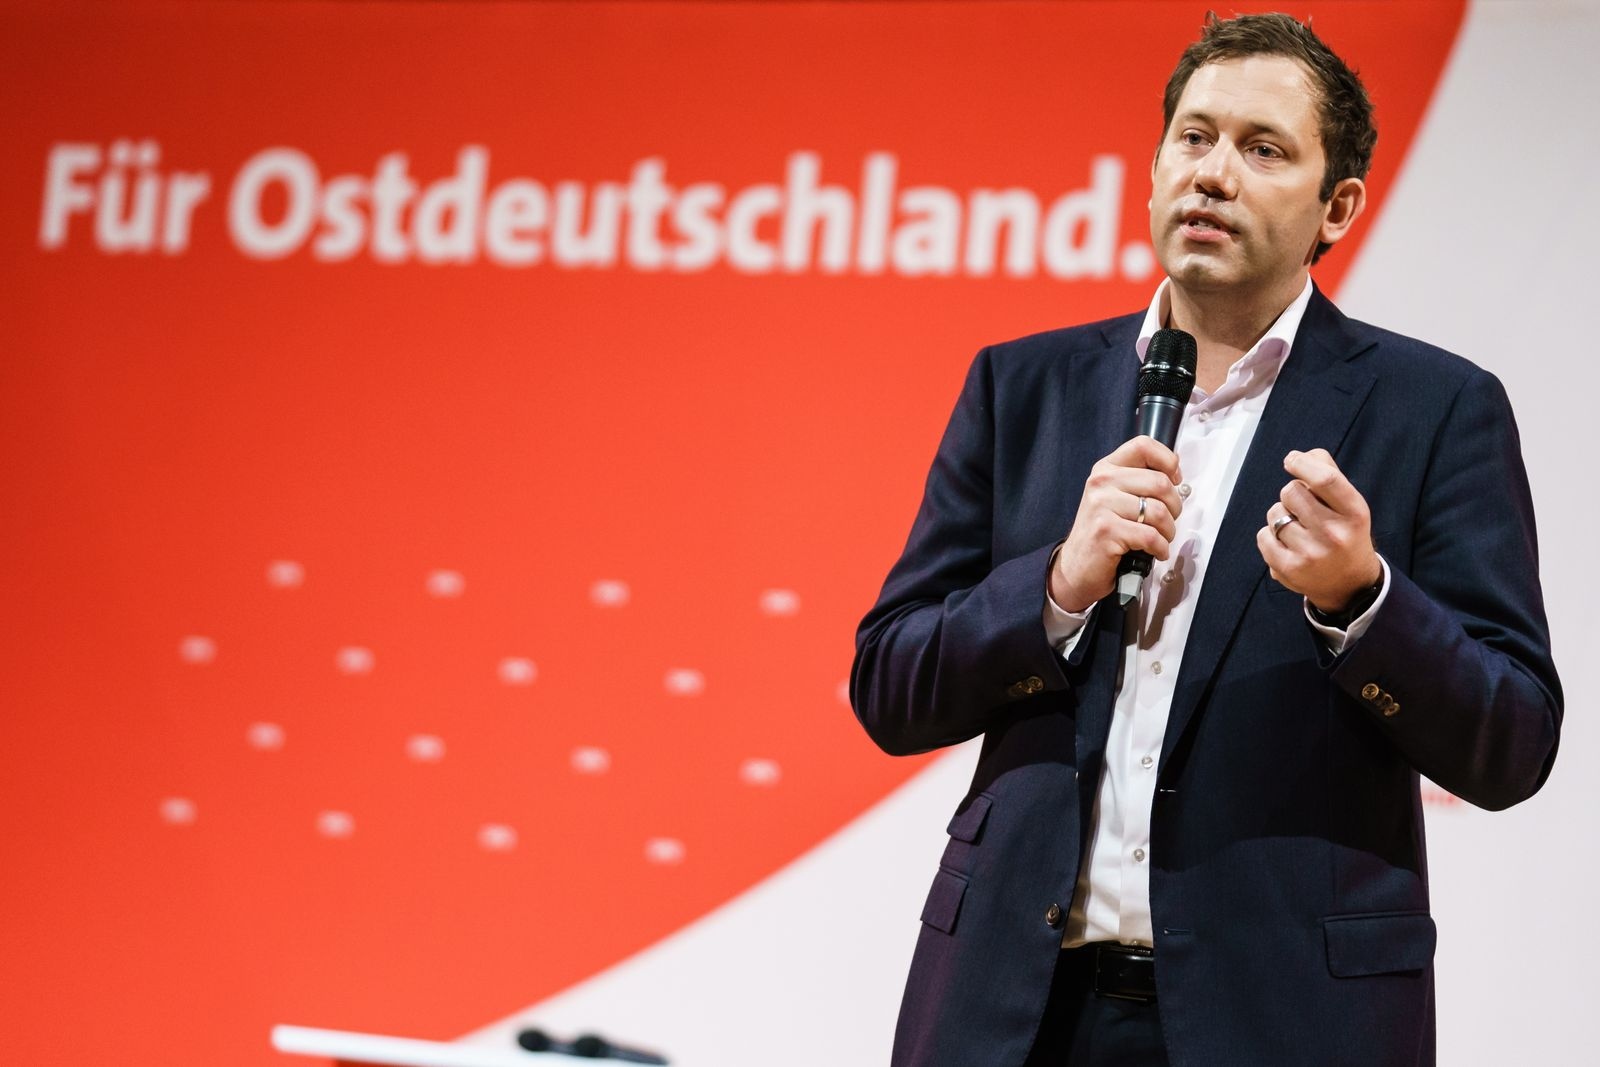 Eastern Convention of the Social Democratic Party Germany